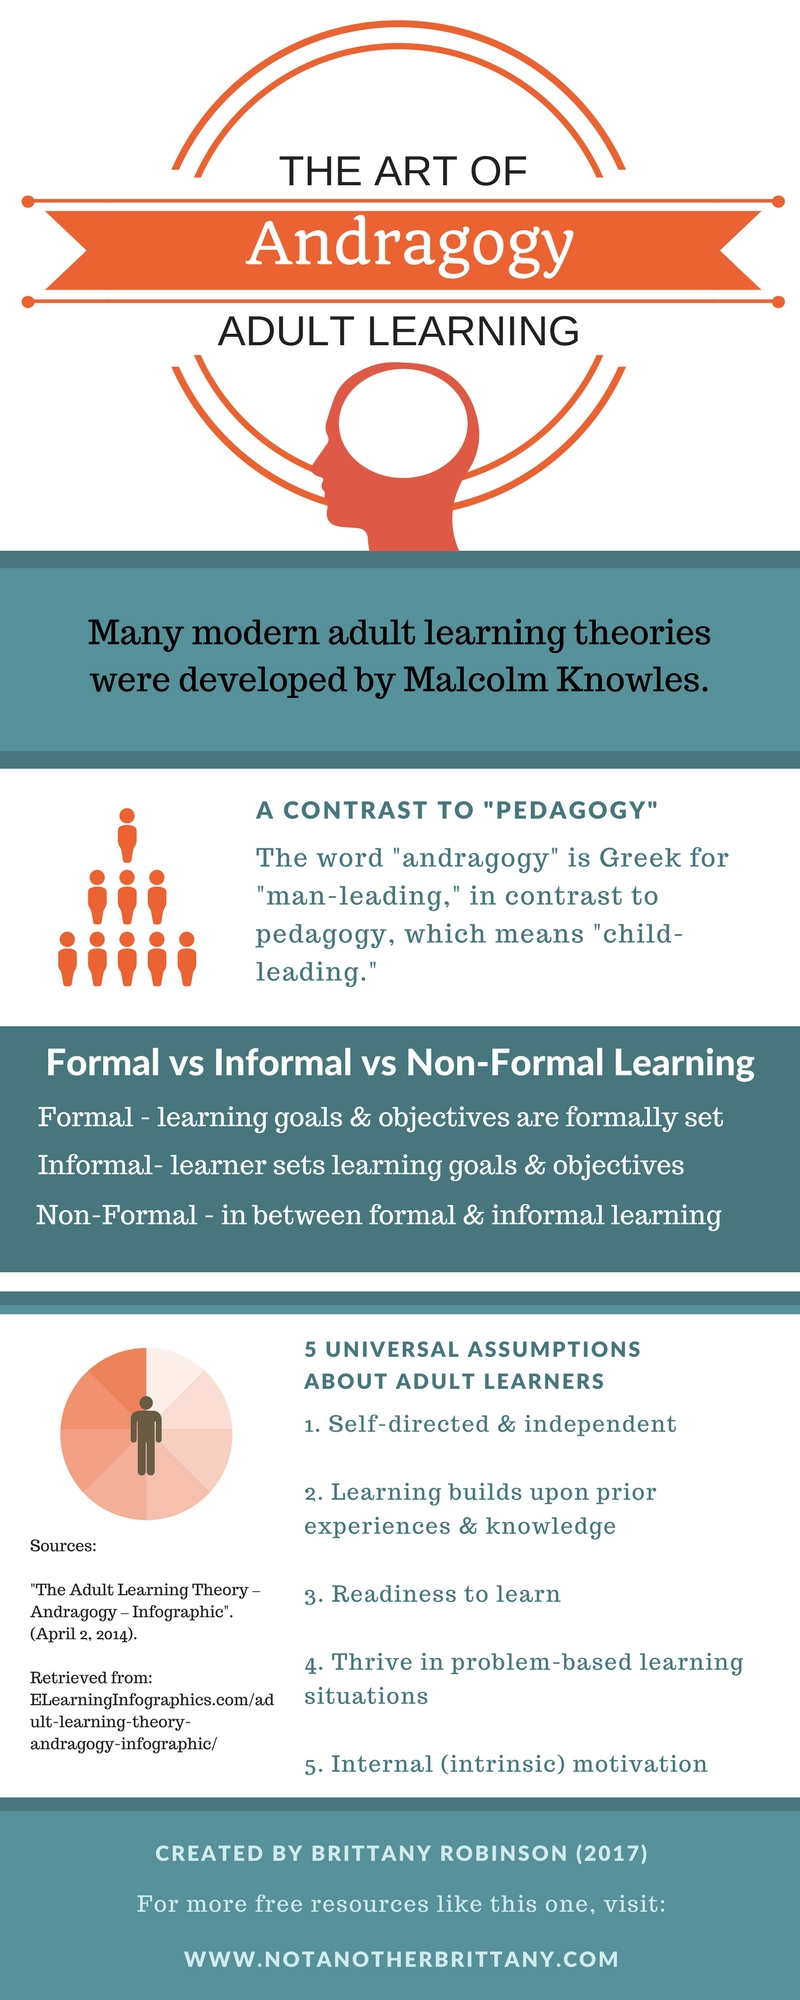 Andragogy: Adult Learning Theory